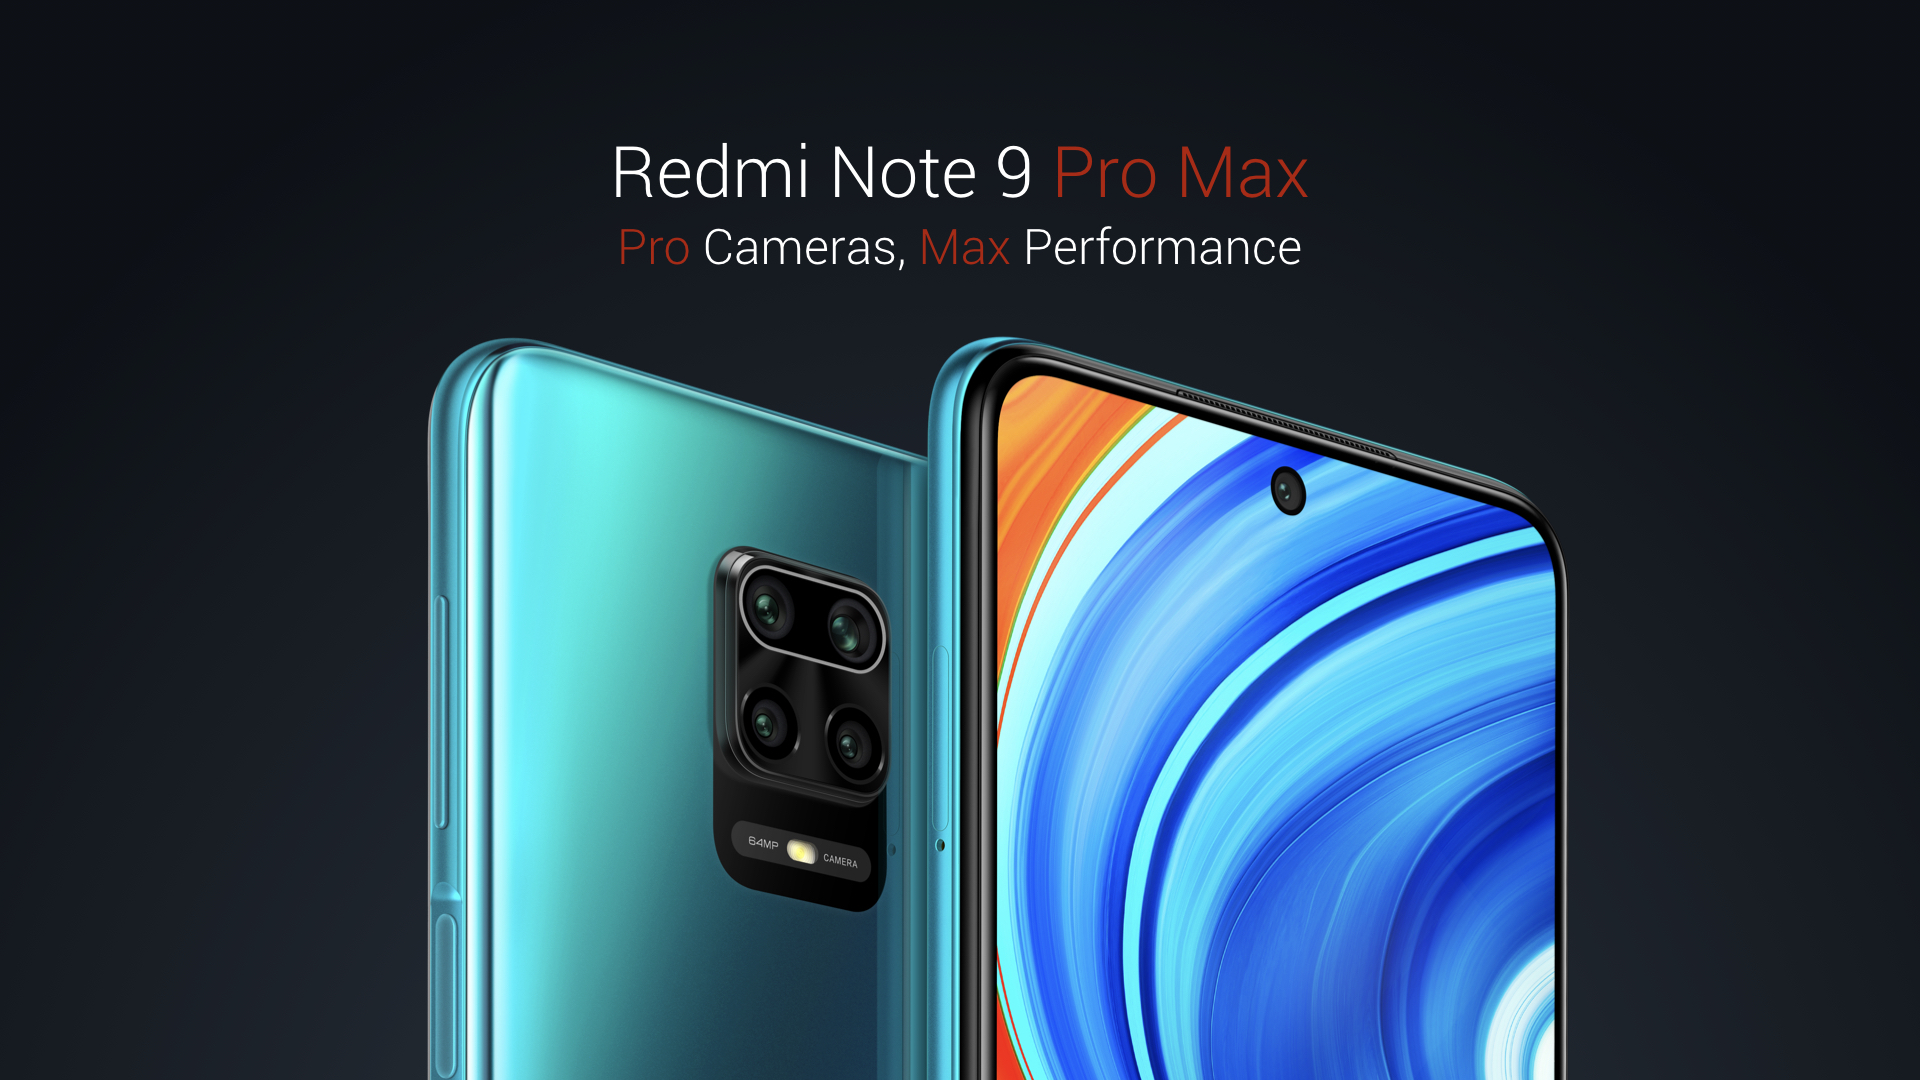 Best Xiaomi Phone 2021 This new Xiaomi phone could be the cheapest 64MP camera phone so